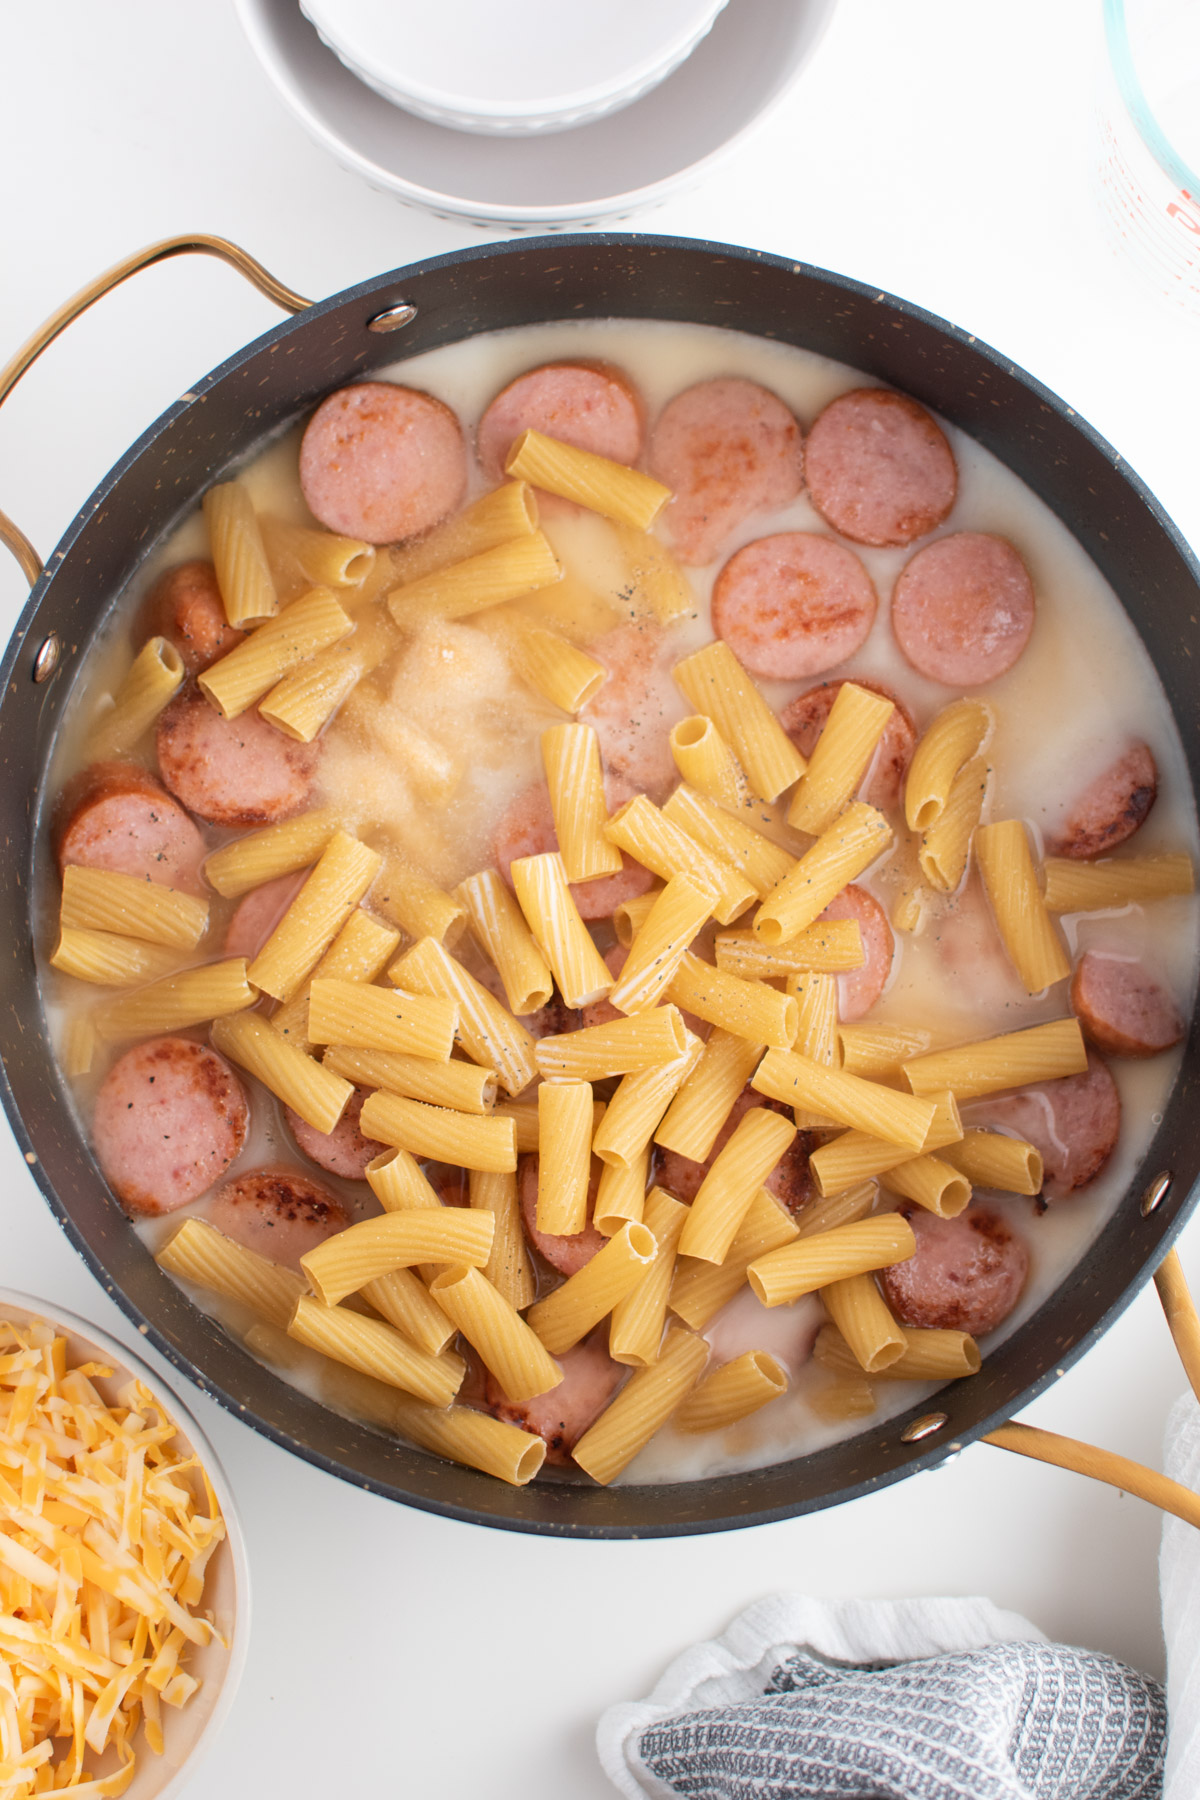 Uncooked rigatoni noodles, cooked kielbasa sausage, and broth in large black skillet.